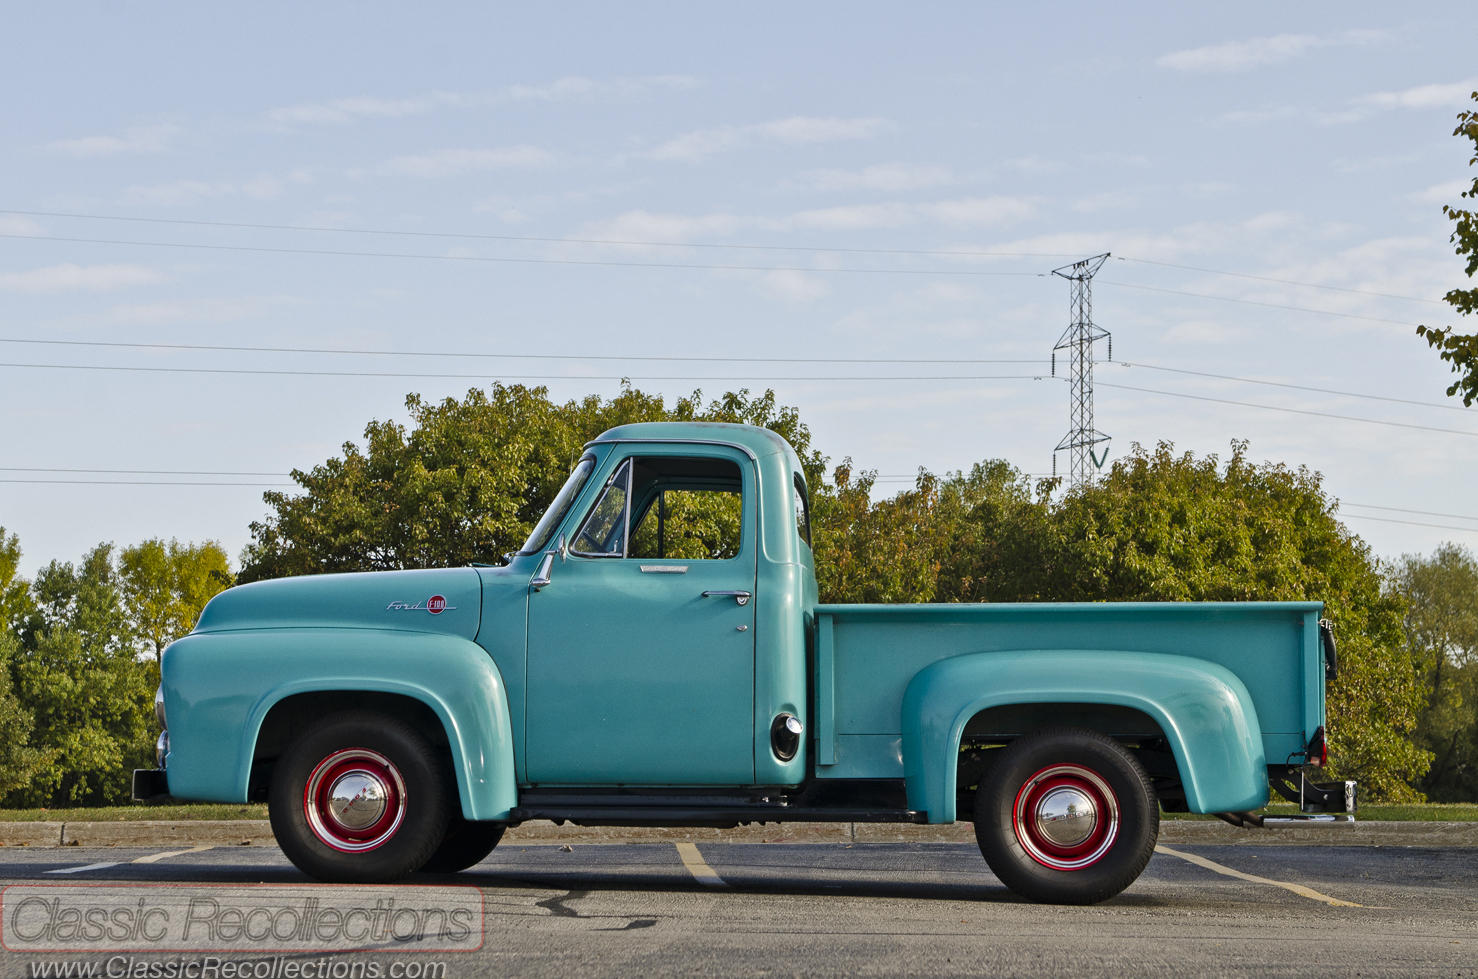 1955 Classic Recollections Ford F100 Value